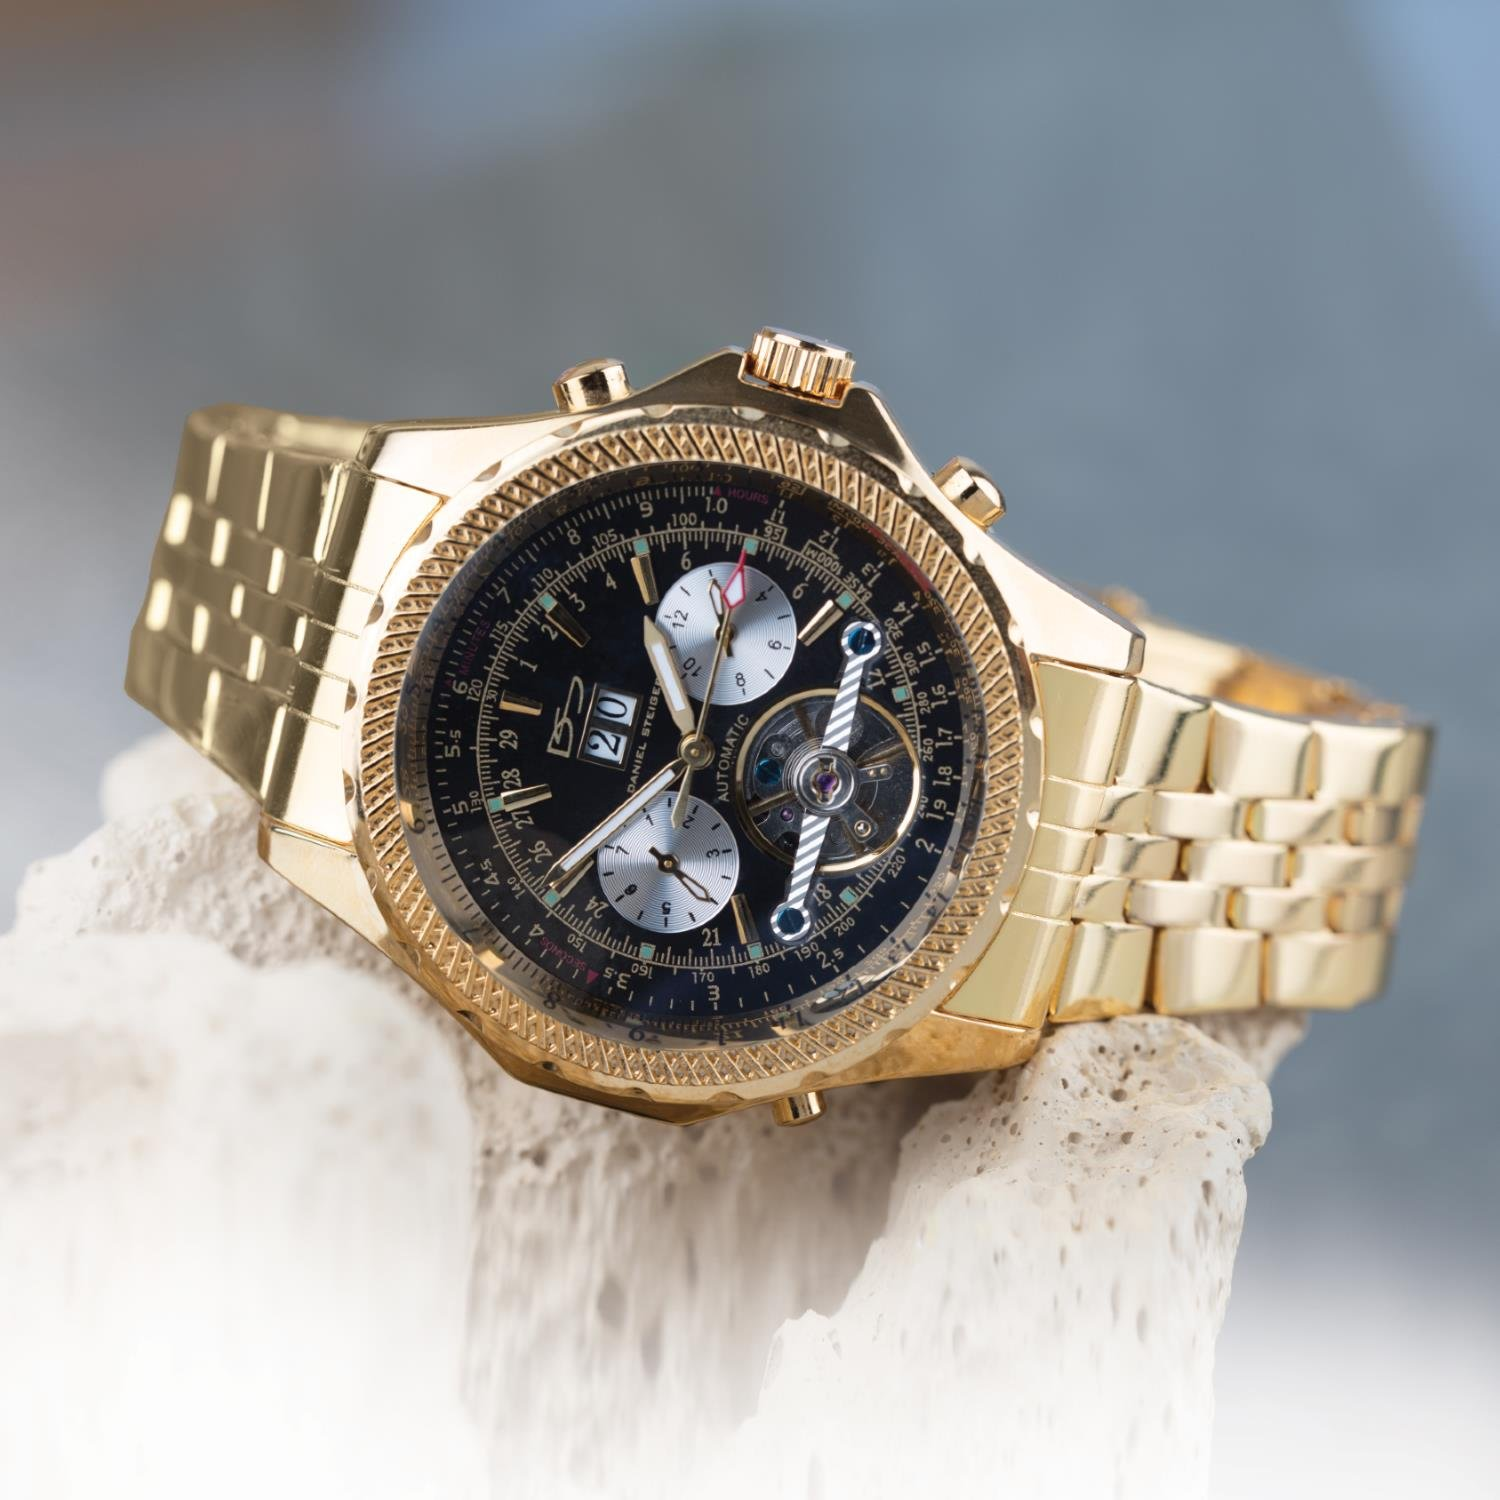 Amazon.com: Daniel Steiger Enduro Automatic Mens Watch - Black Dial - Gold Plated Stainless Steel Case - Day, Date & Month Calendar - Skeleton Case Back: ...